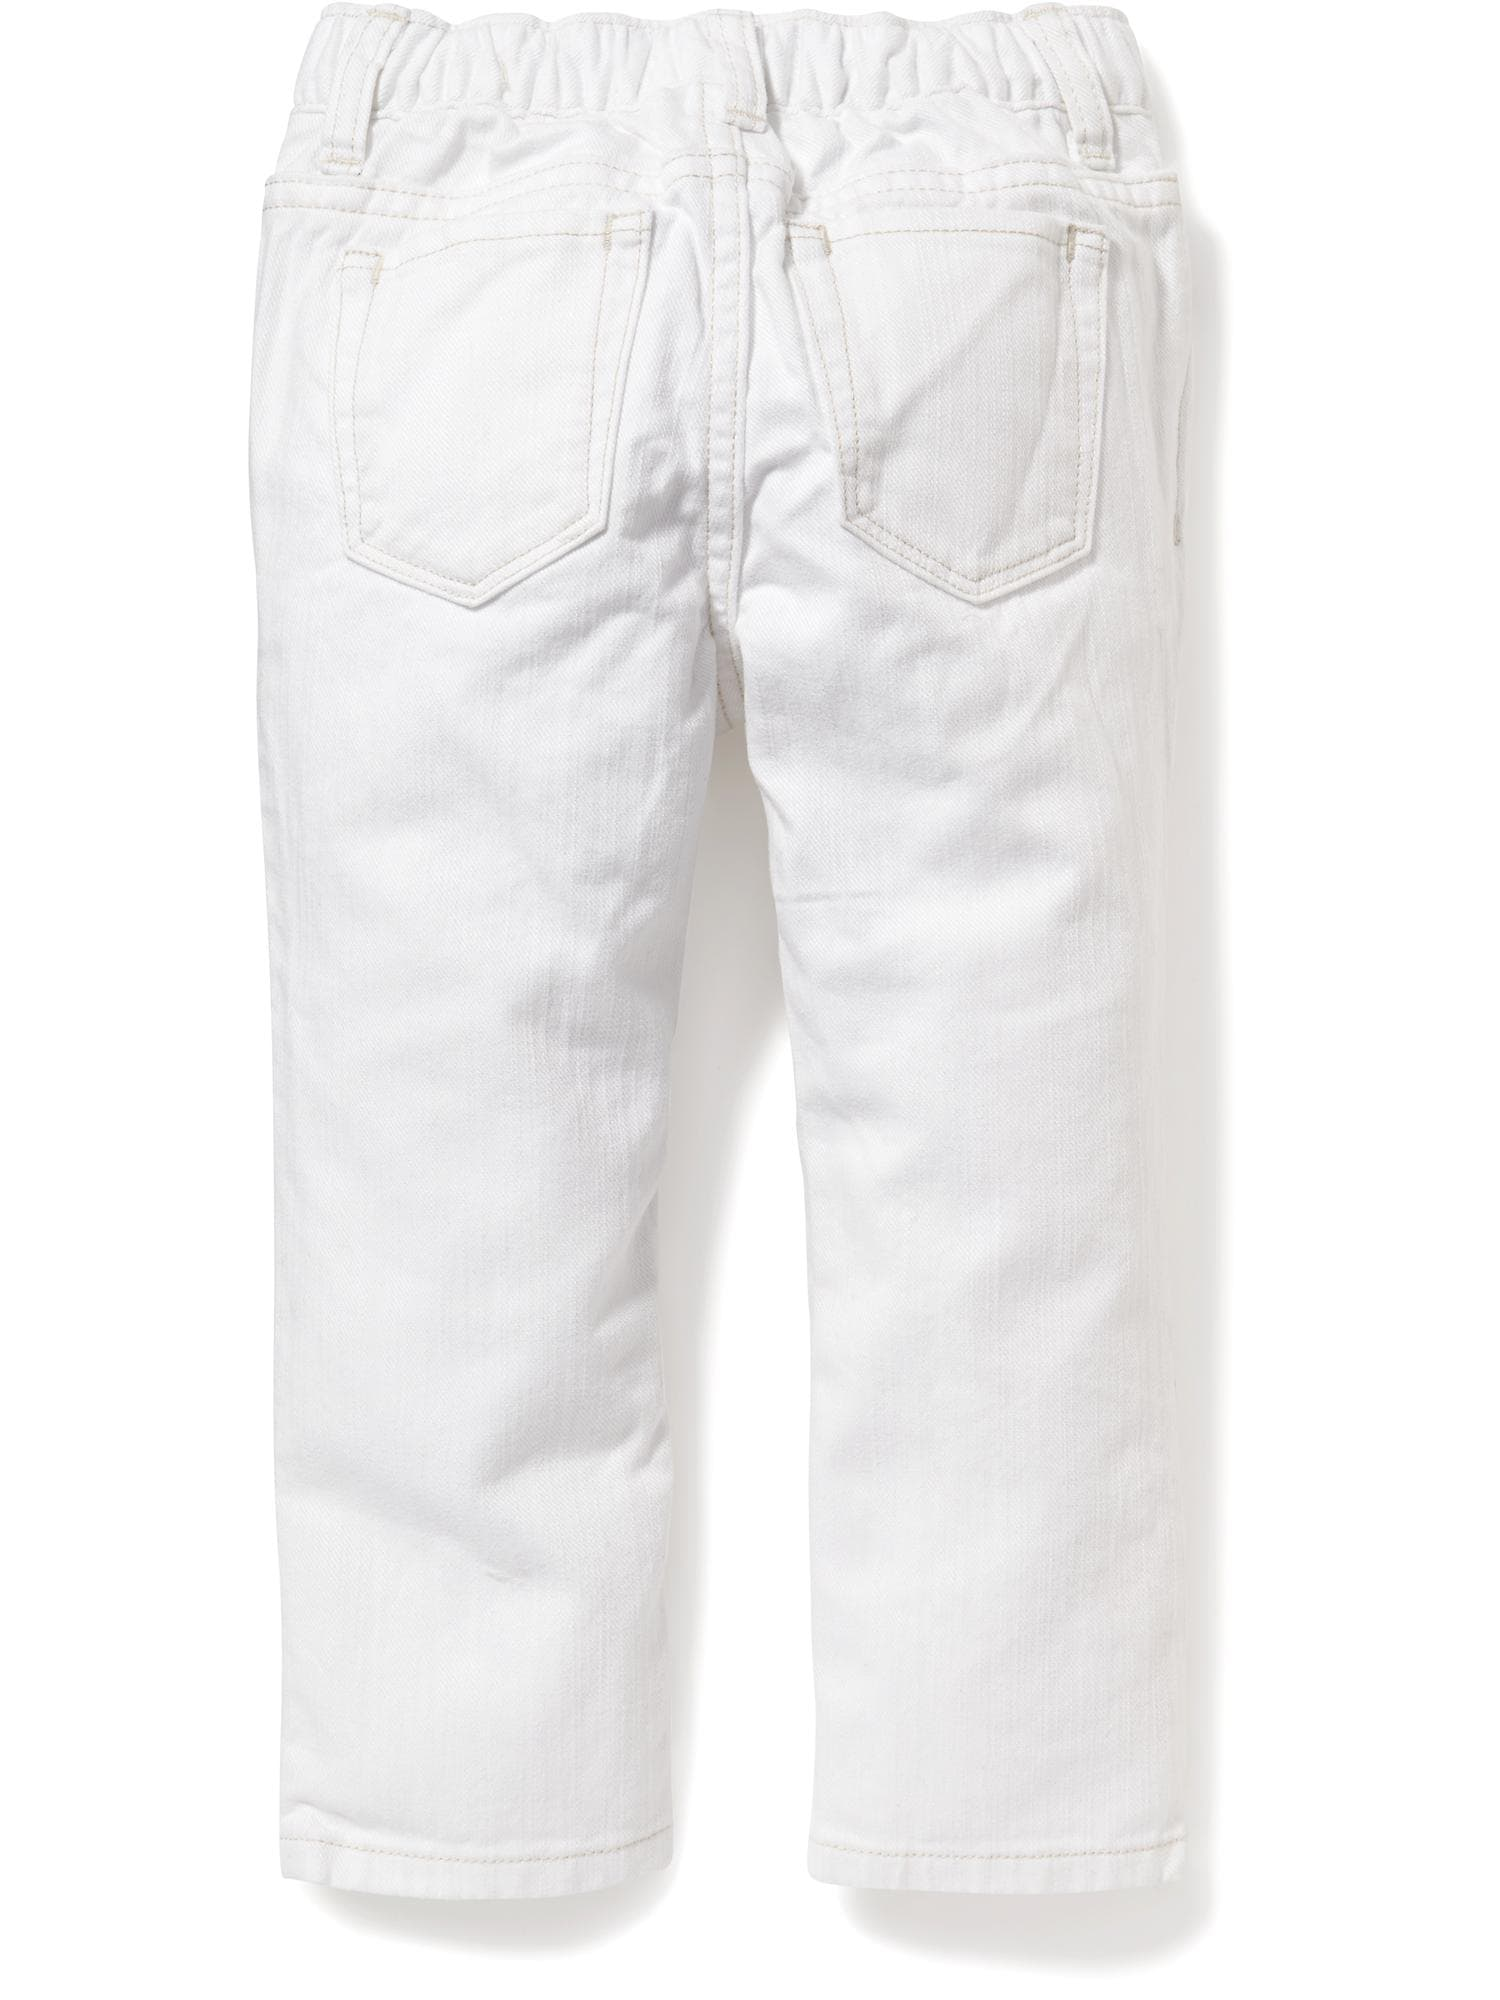 Skinny White Jeans for Toddler | Old Navy